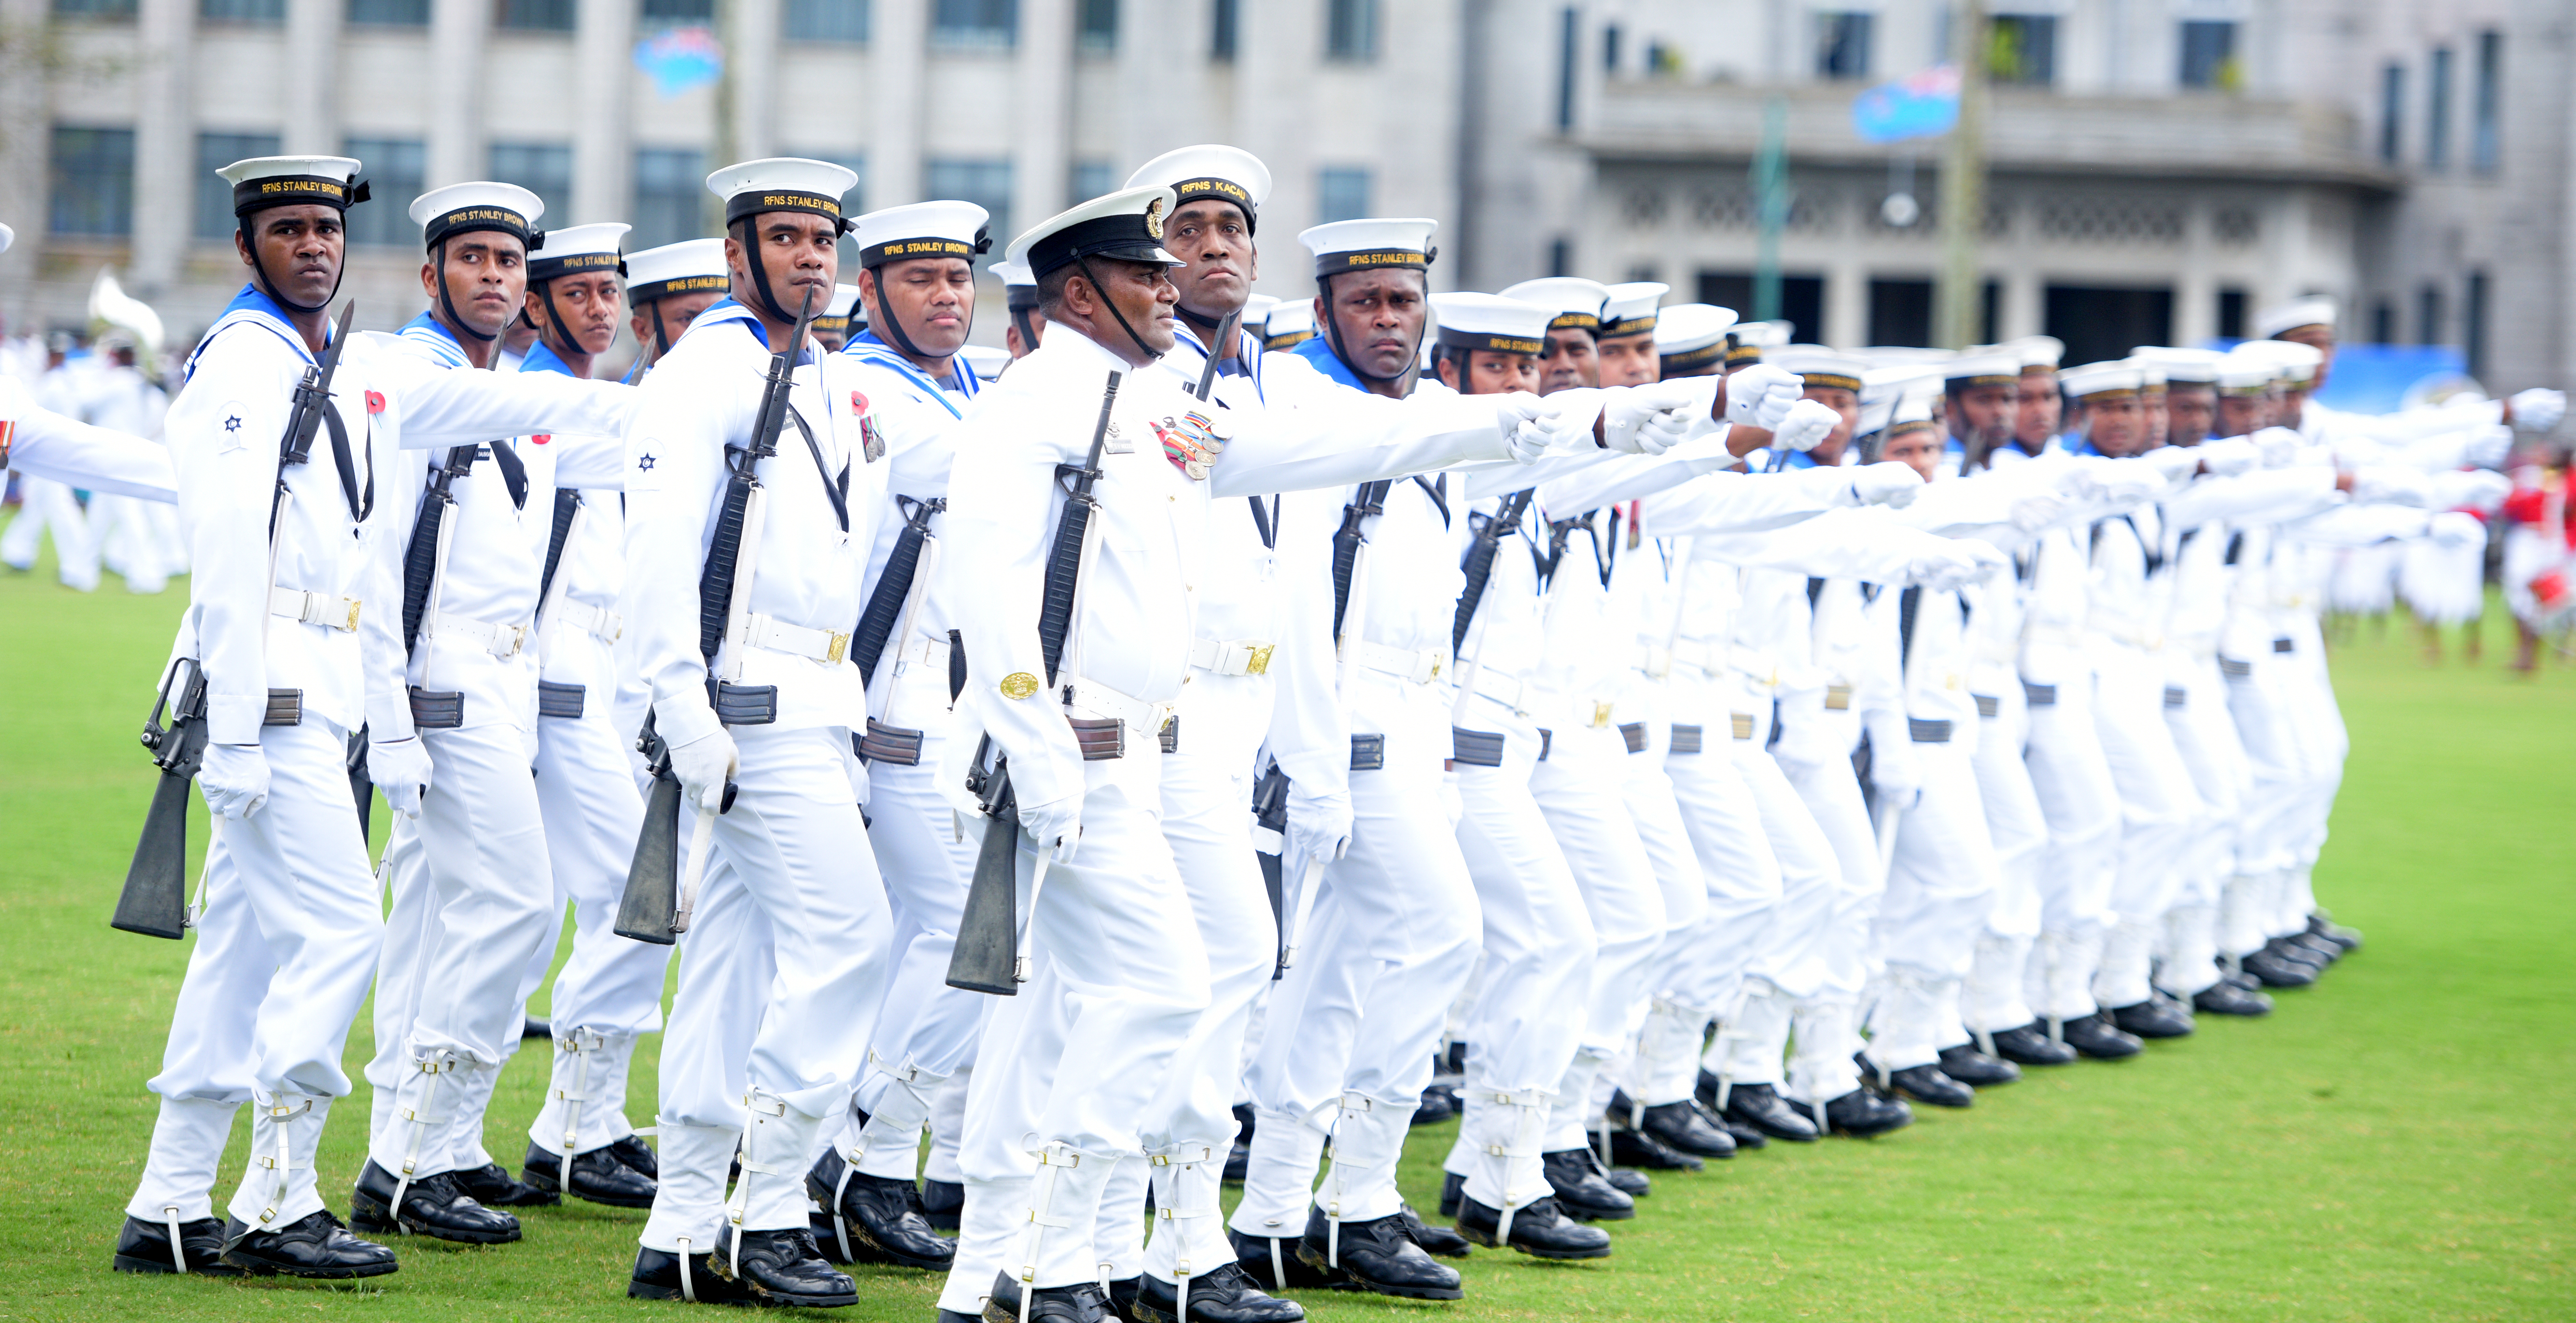 Members of RFMF Naval division during The 50th Independence commemorative Fiji Day Parade at Albert Park on October 7, 2020. Photo: Ronald Kumar.